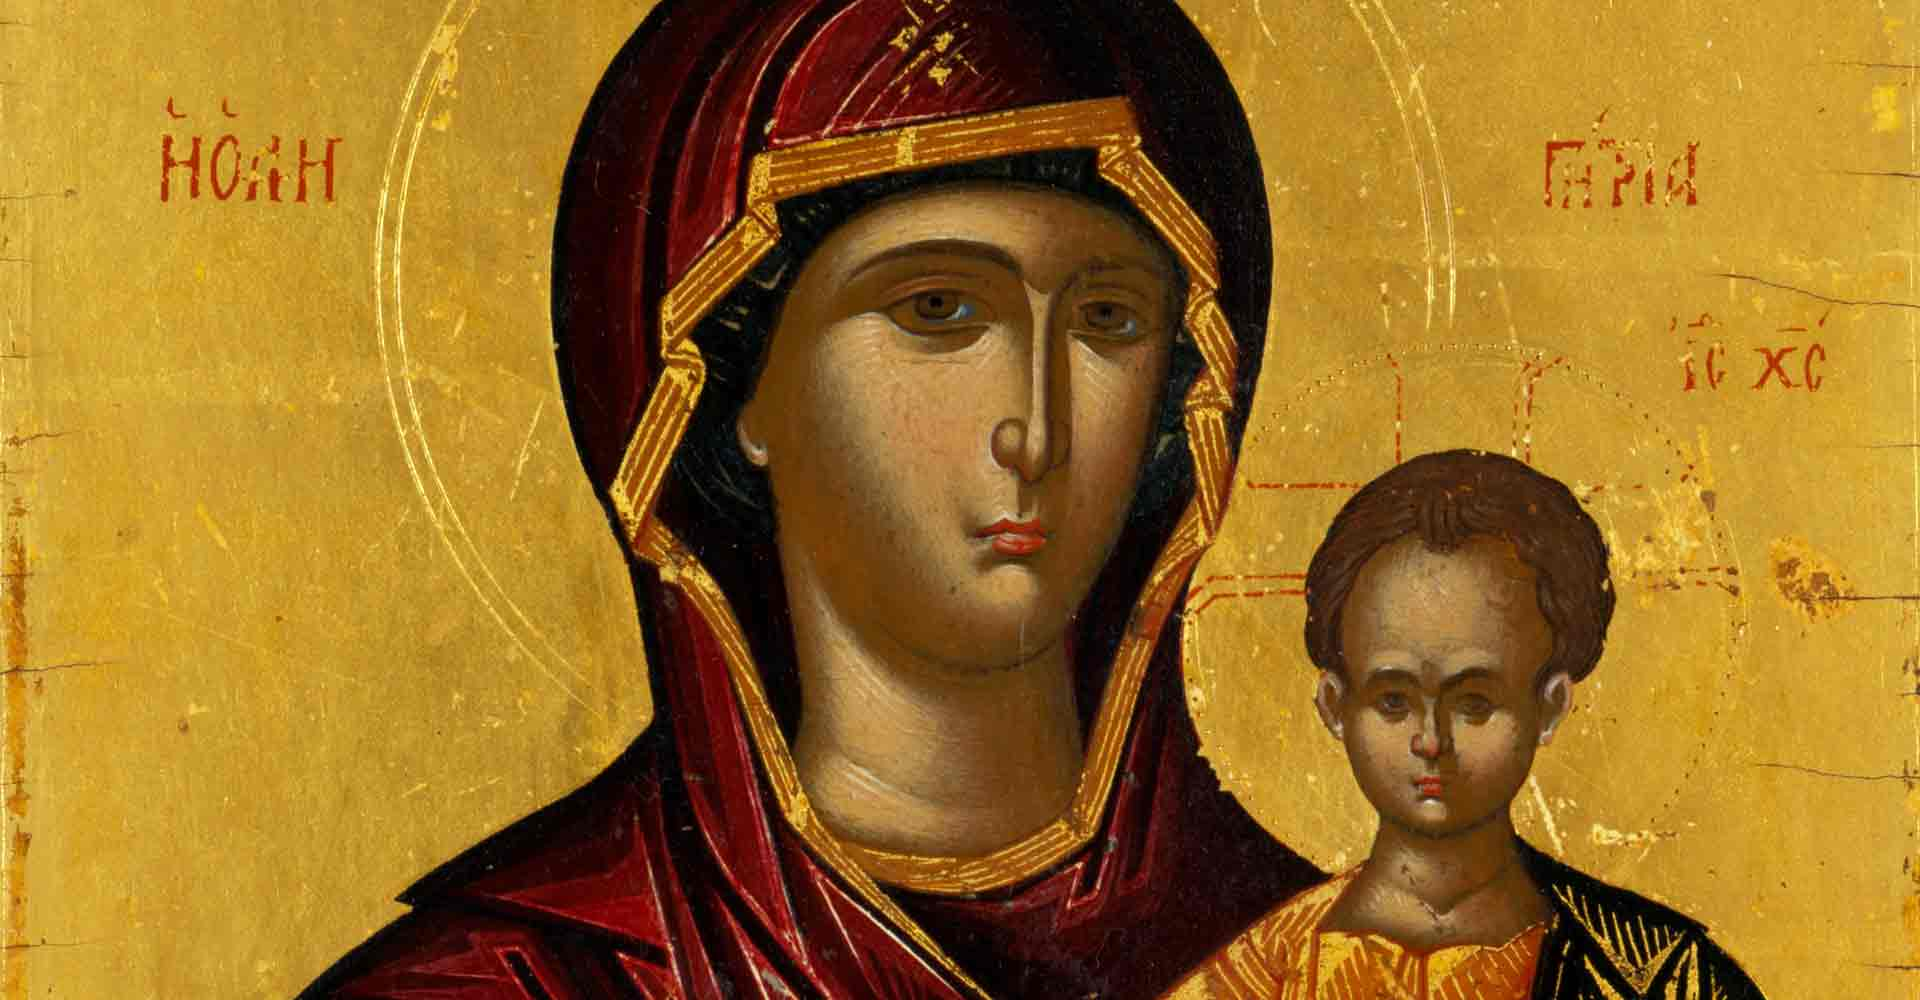 Icon of the Virgin Mary, Mother of god